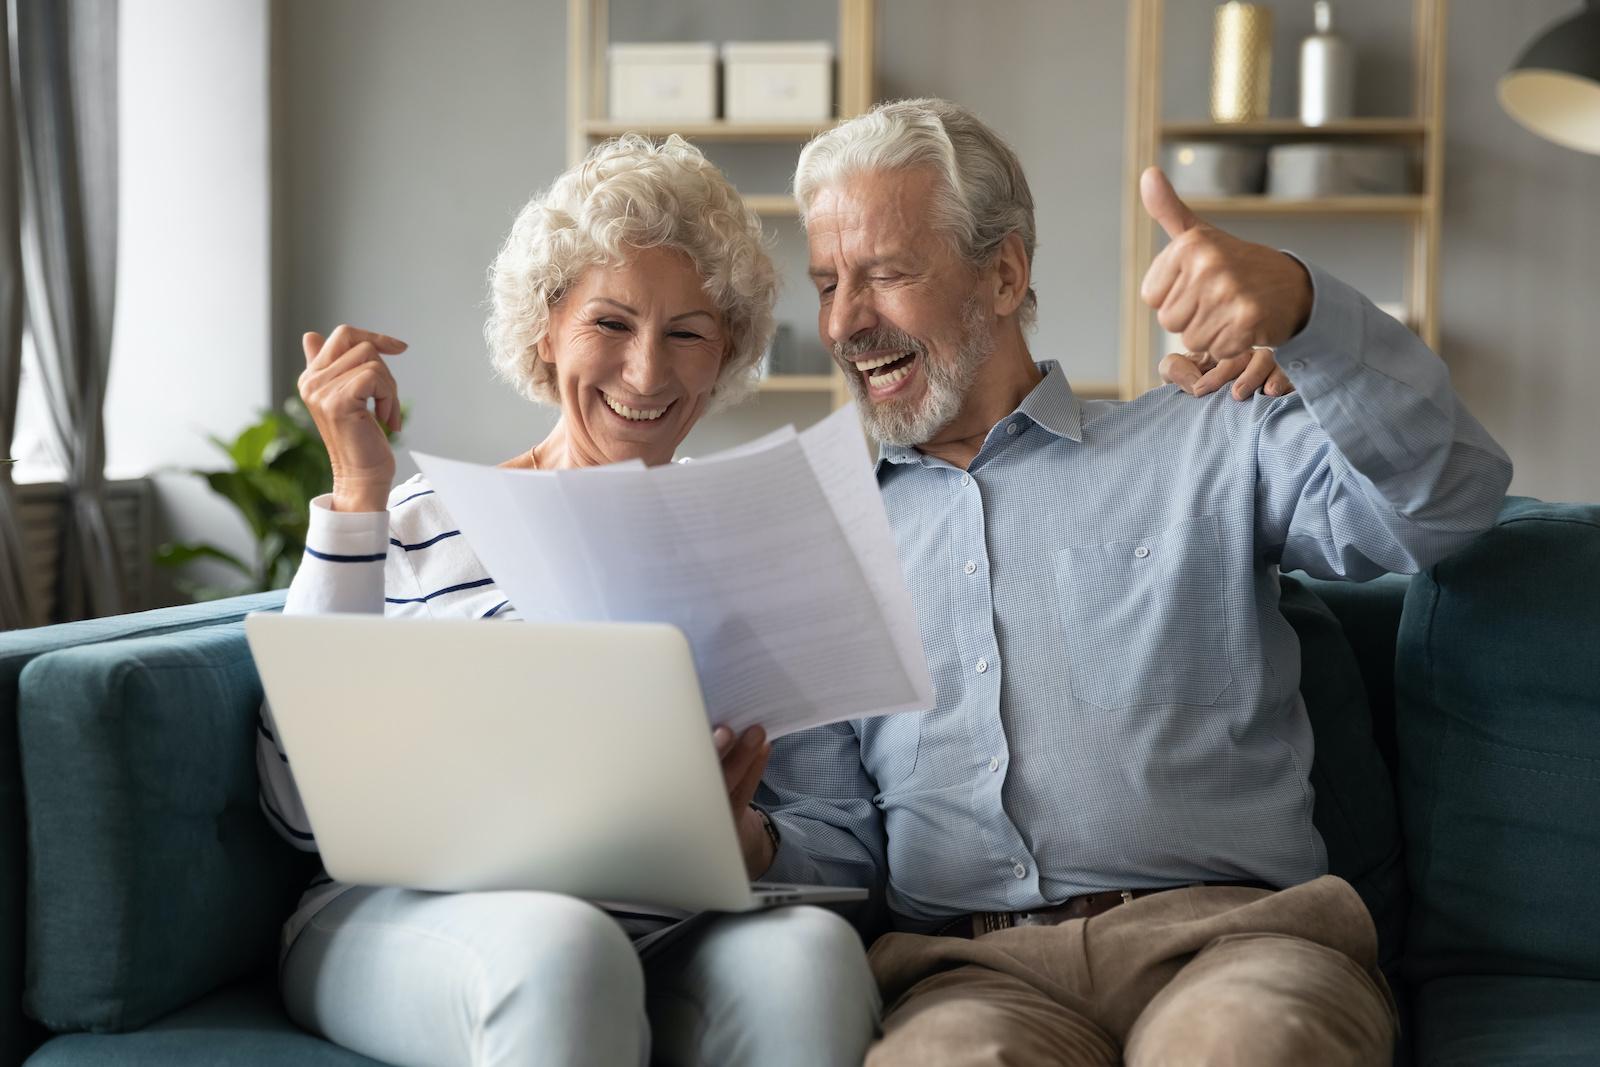 How long will it take to pay off my credit card: An older couple celebrates while looking at their credit card bill